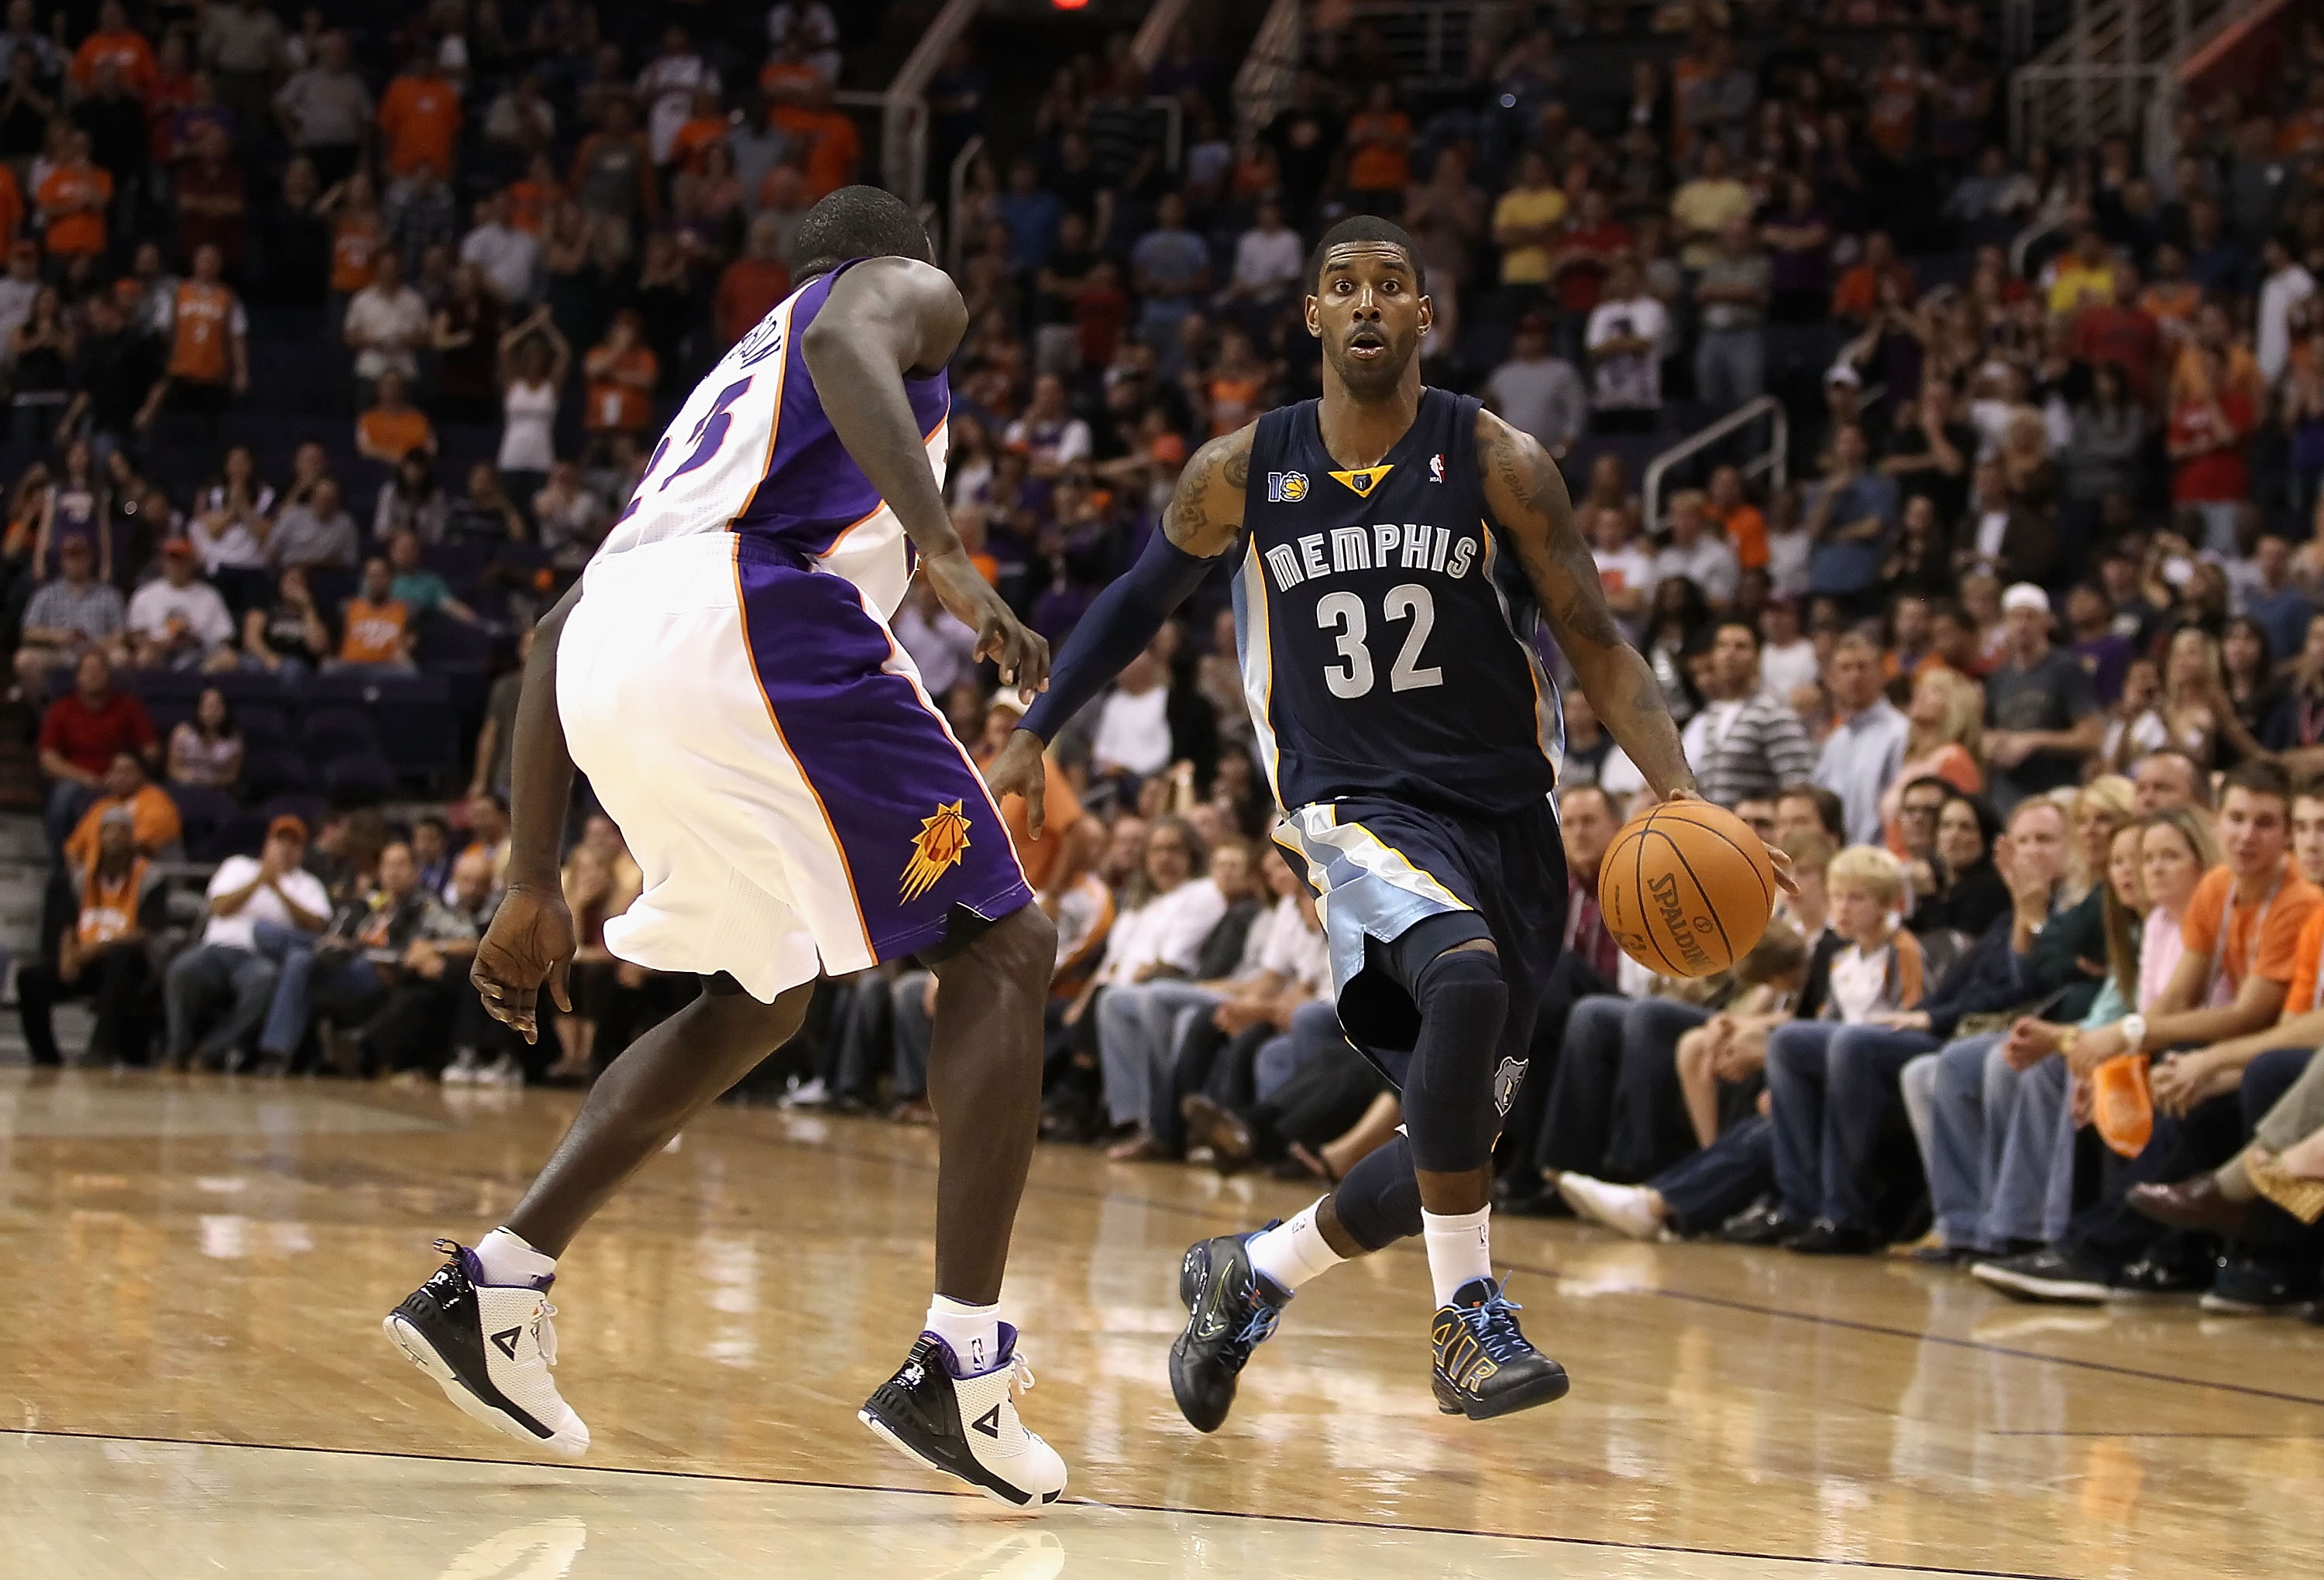 PHOENIX - NOVEMBER 05:  O.J. Mayo #32 of the Memphis Grizzlies handles the ball during the NBA game against the Phoenix Suns at US Airways Center on November 5, 2010 in Phoenix, Arizona. NOTE TO USER: User expressly acknowledges and agrees that, by downlo